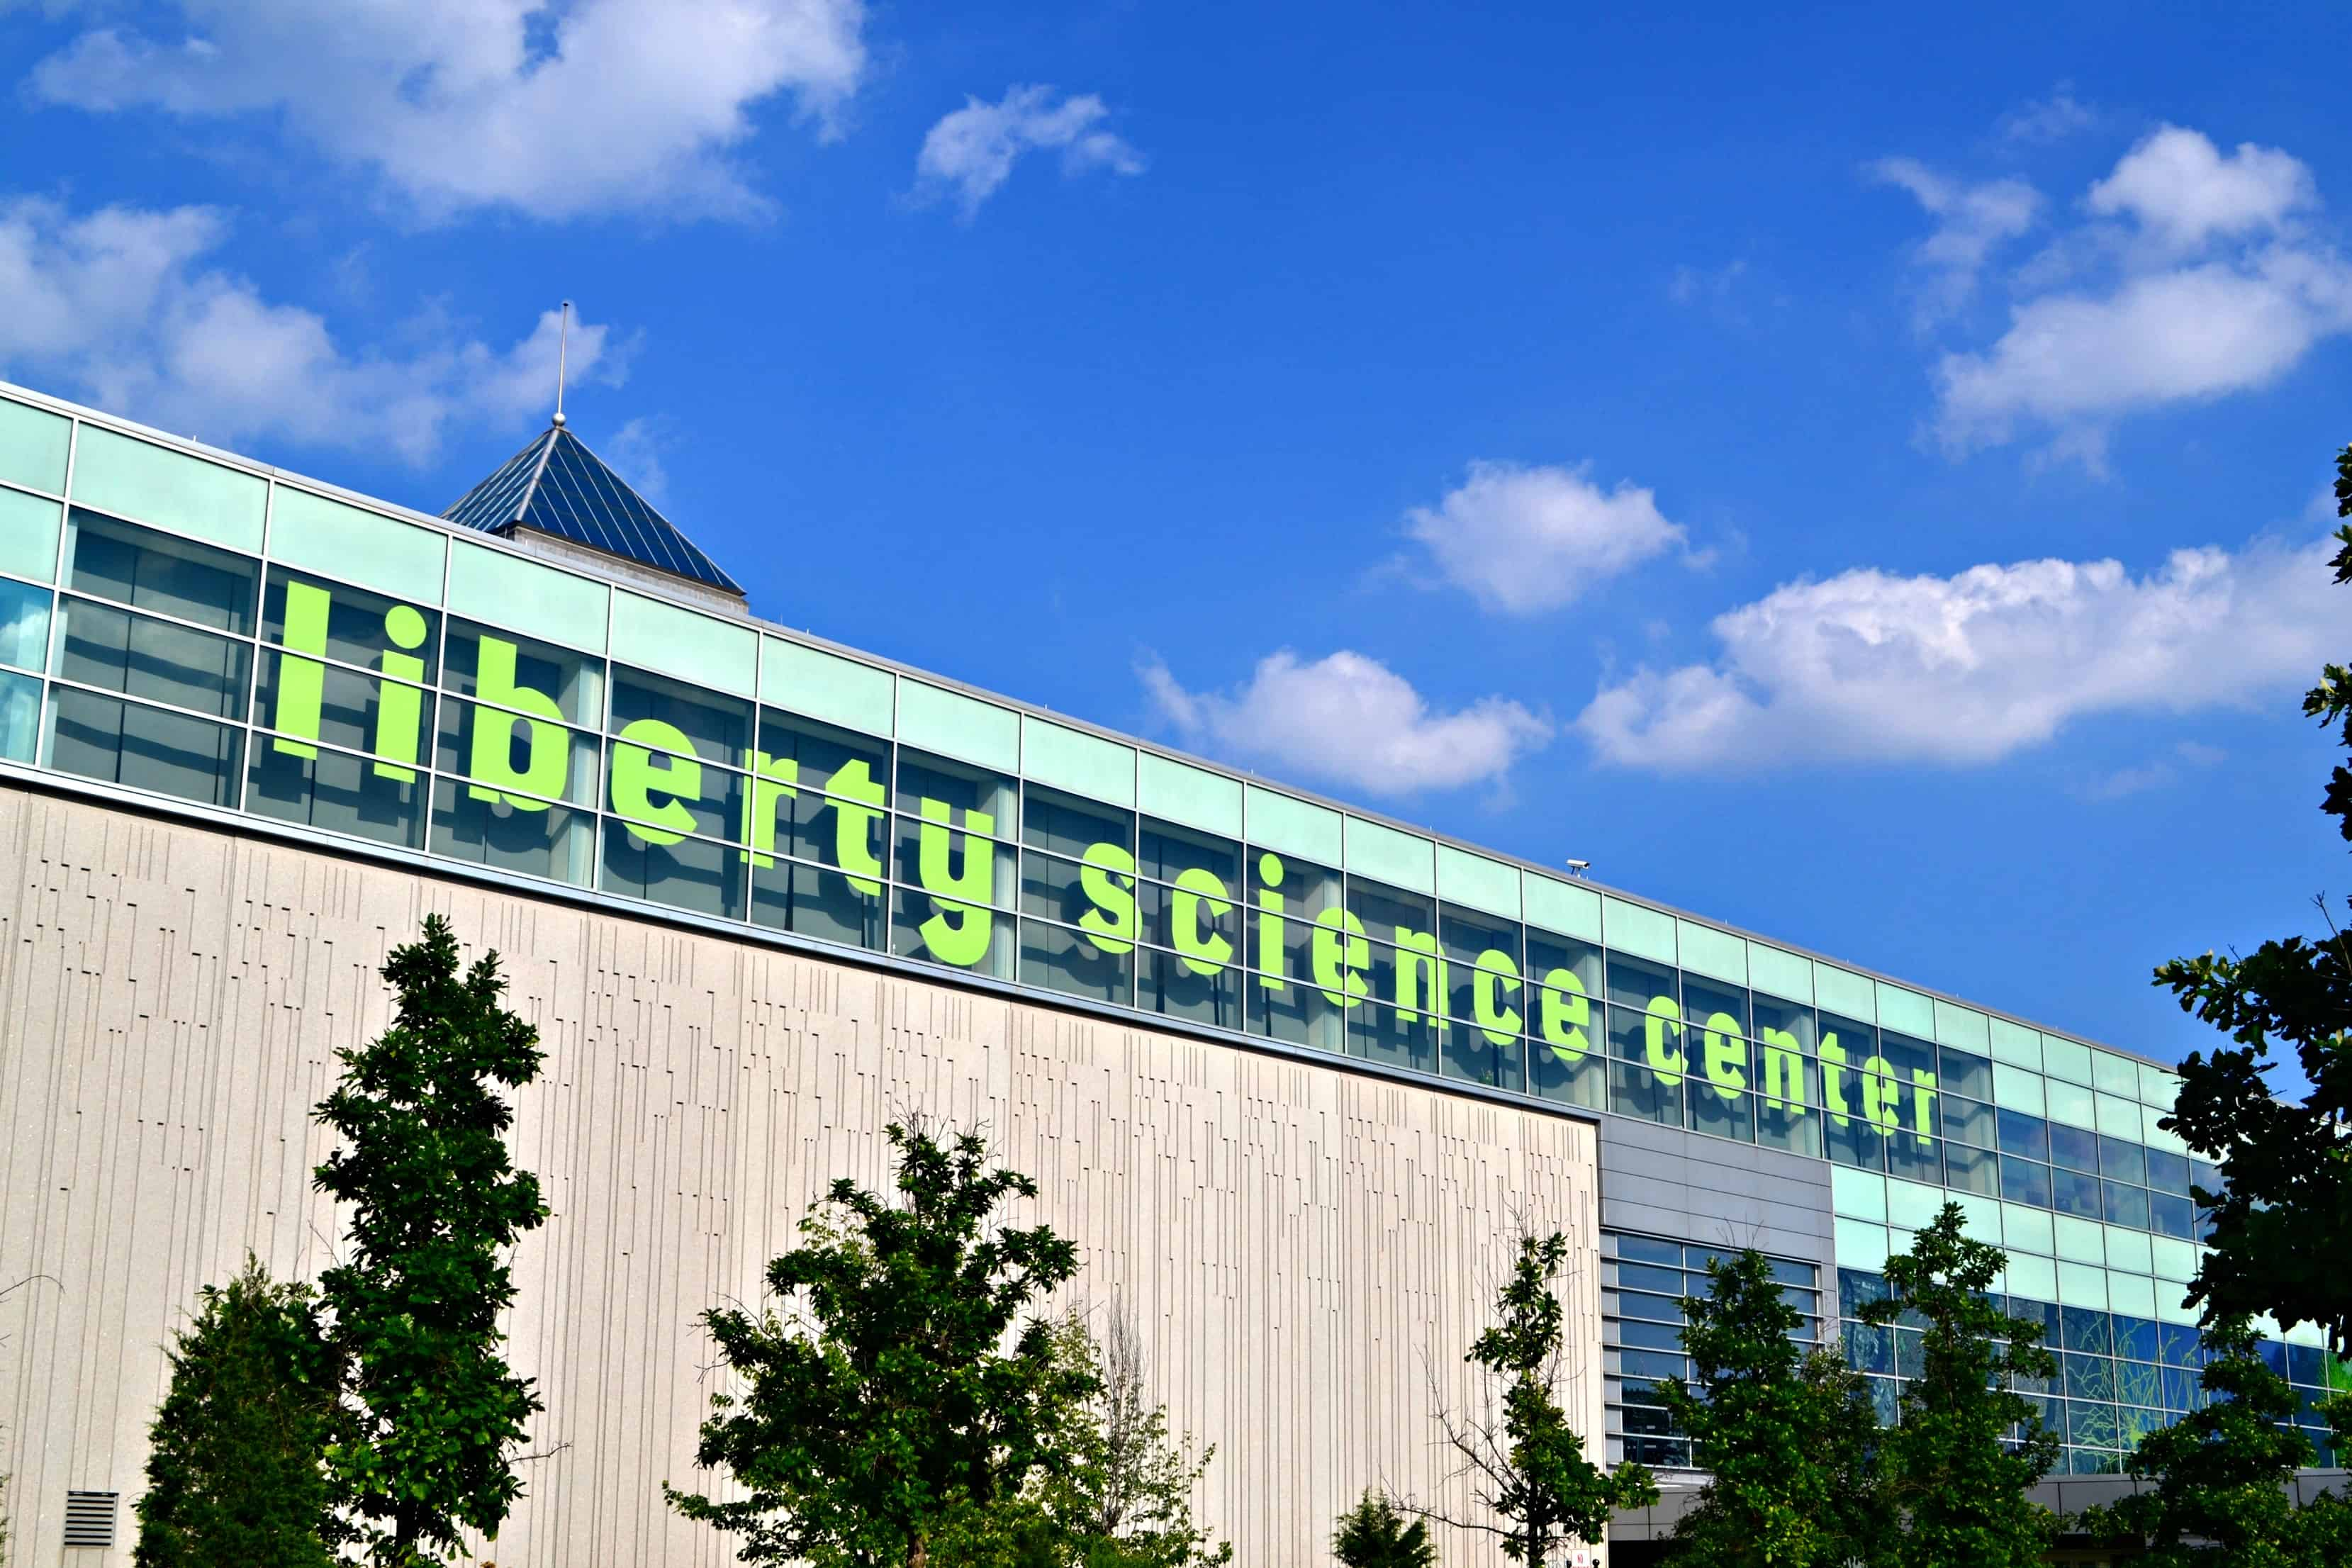 There's so much to do at Liberty Science Center! Learn for yourself by entering to win 4 passes to visit.